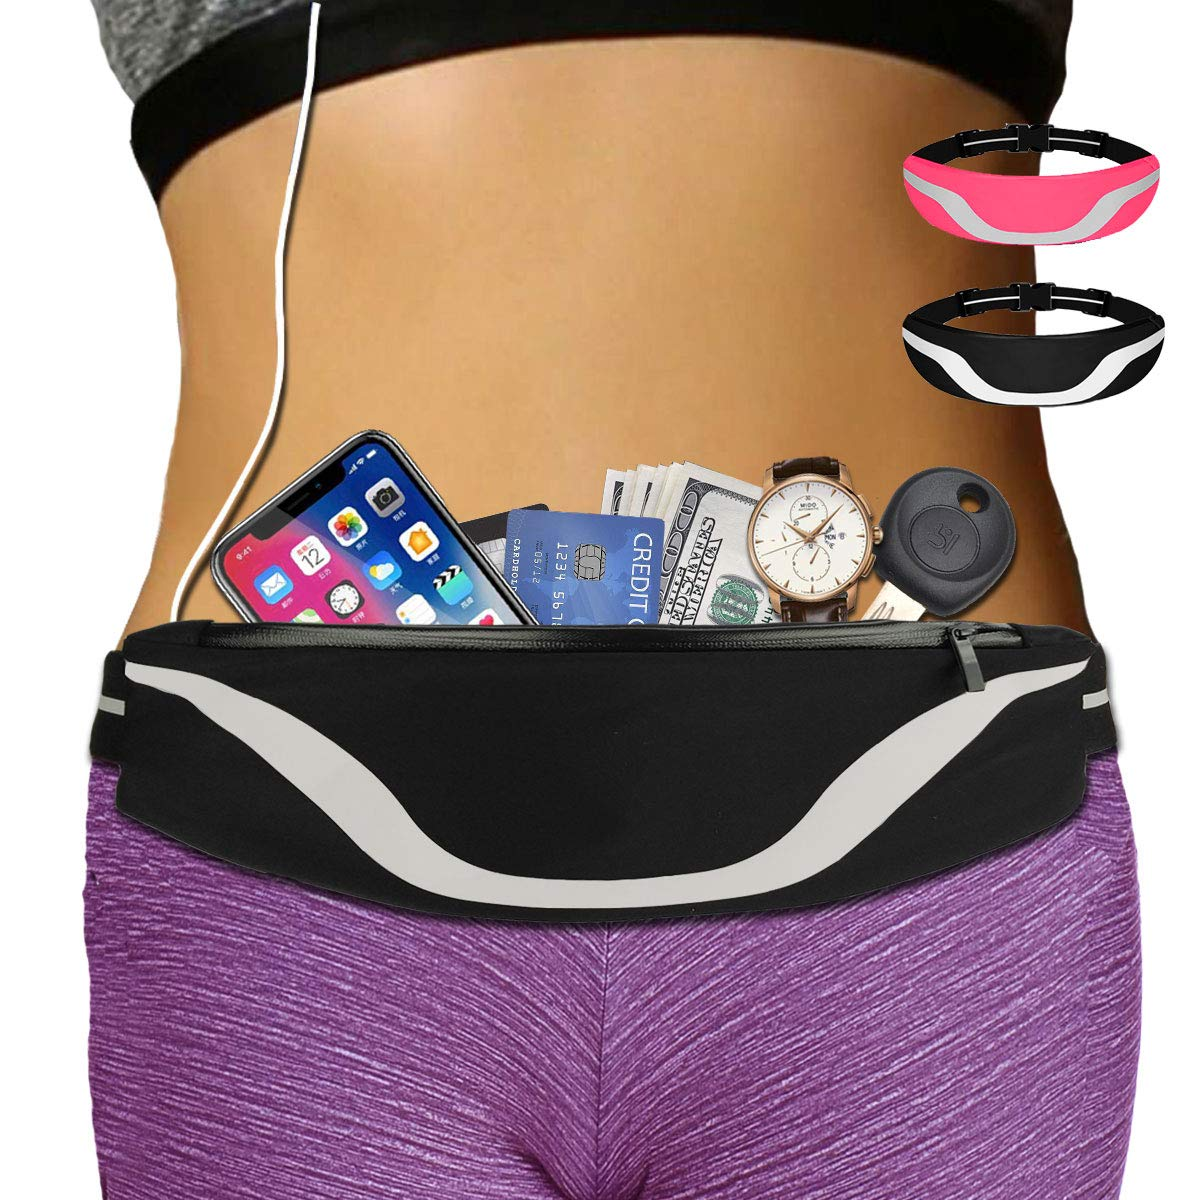 AIKENDO iPhone Running Pouch Belt 8 Plus, Adjustable Running Belt iPhone x 7 for Jogging,Workout,Travelling Fits All Phone, Running Fanny Pack for Men Women,Phone Carrier Holder for Running